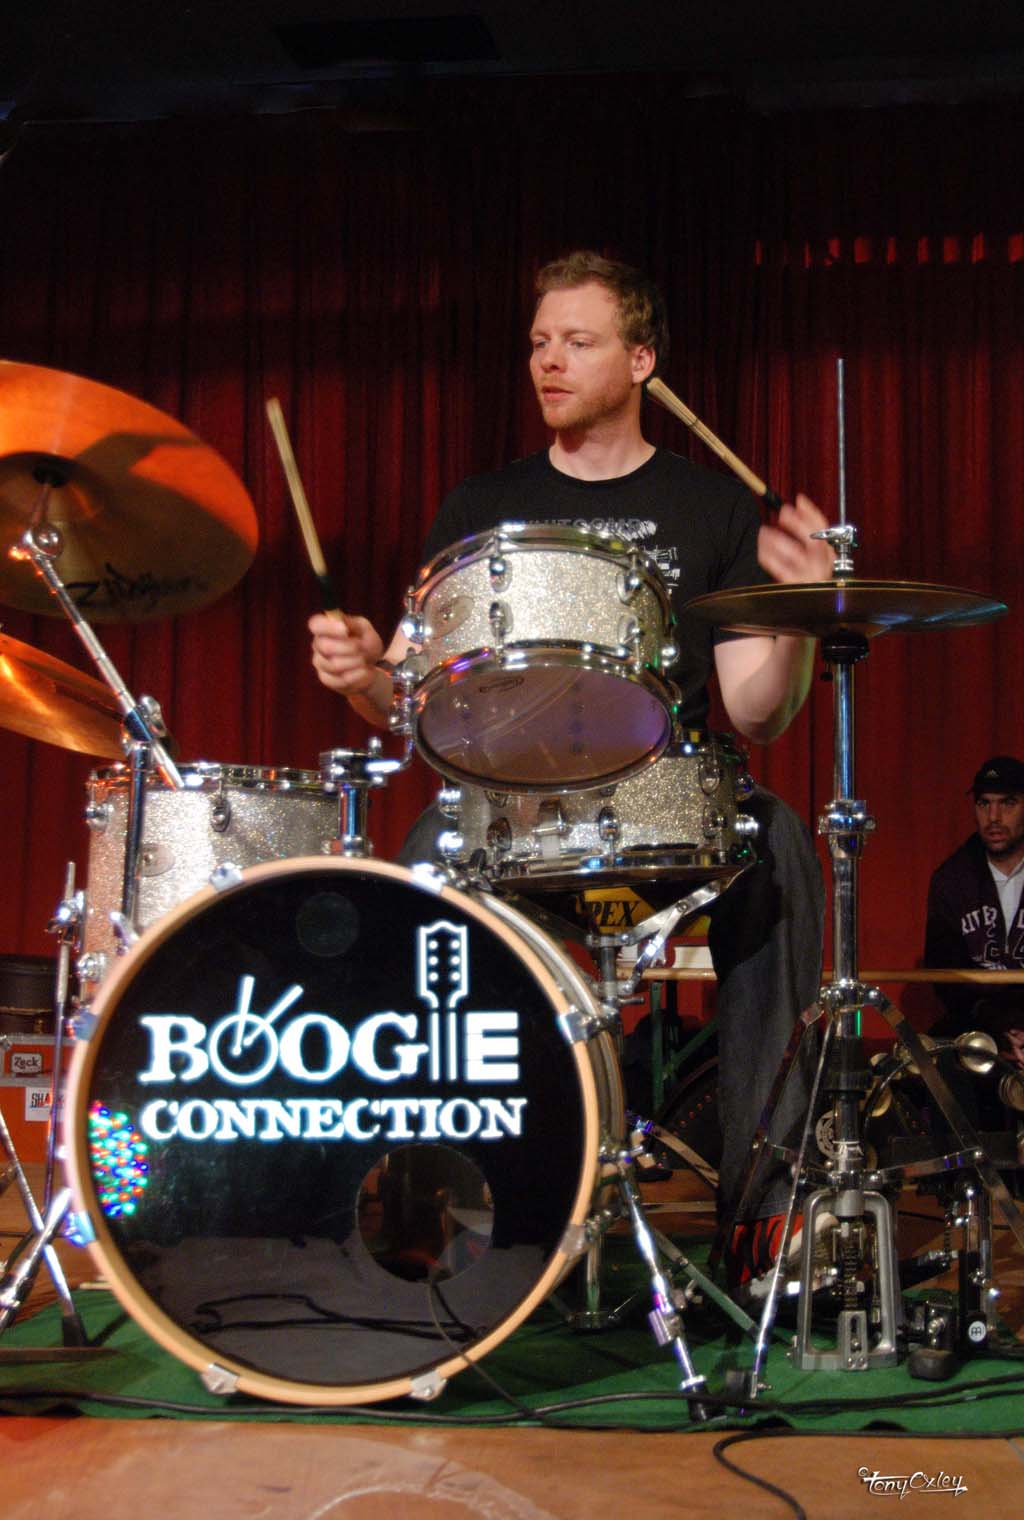 32_Boogie Connection Hiram Mutschler_042010.jpg